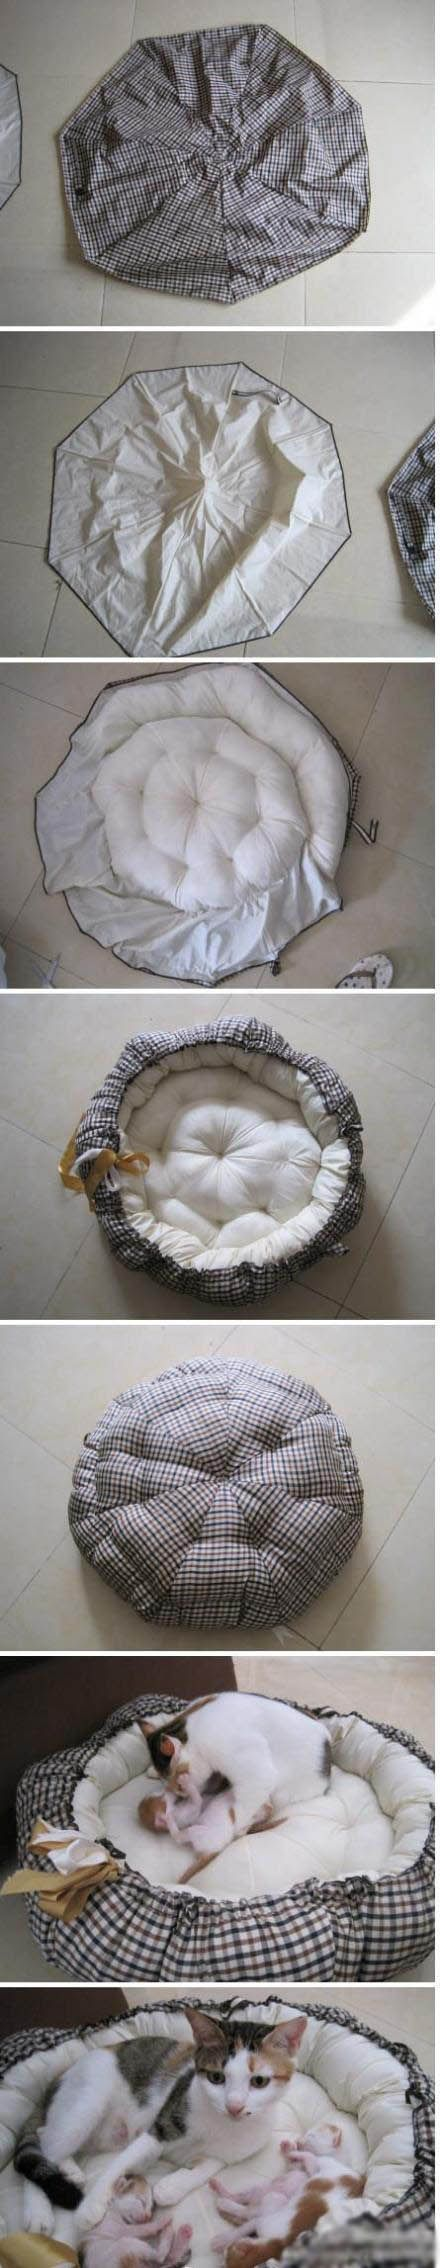 Diy Pet Bed | Click to see More DIY & Crafts Tutorials on Our Site.